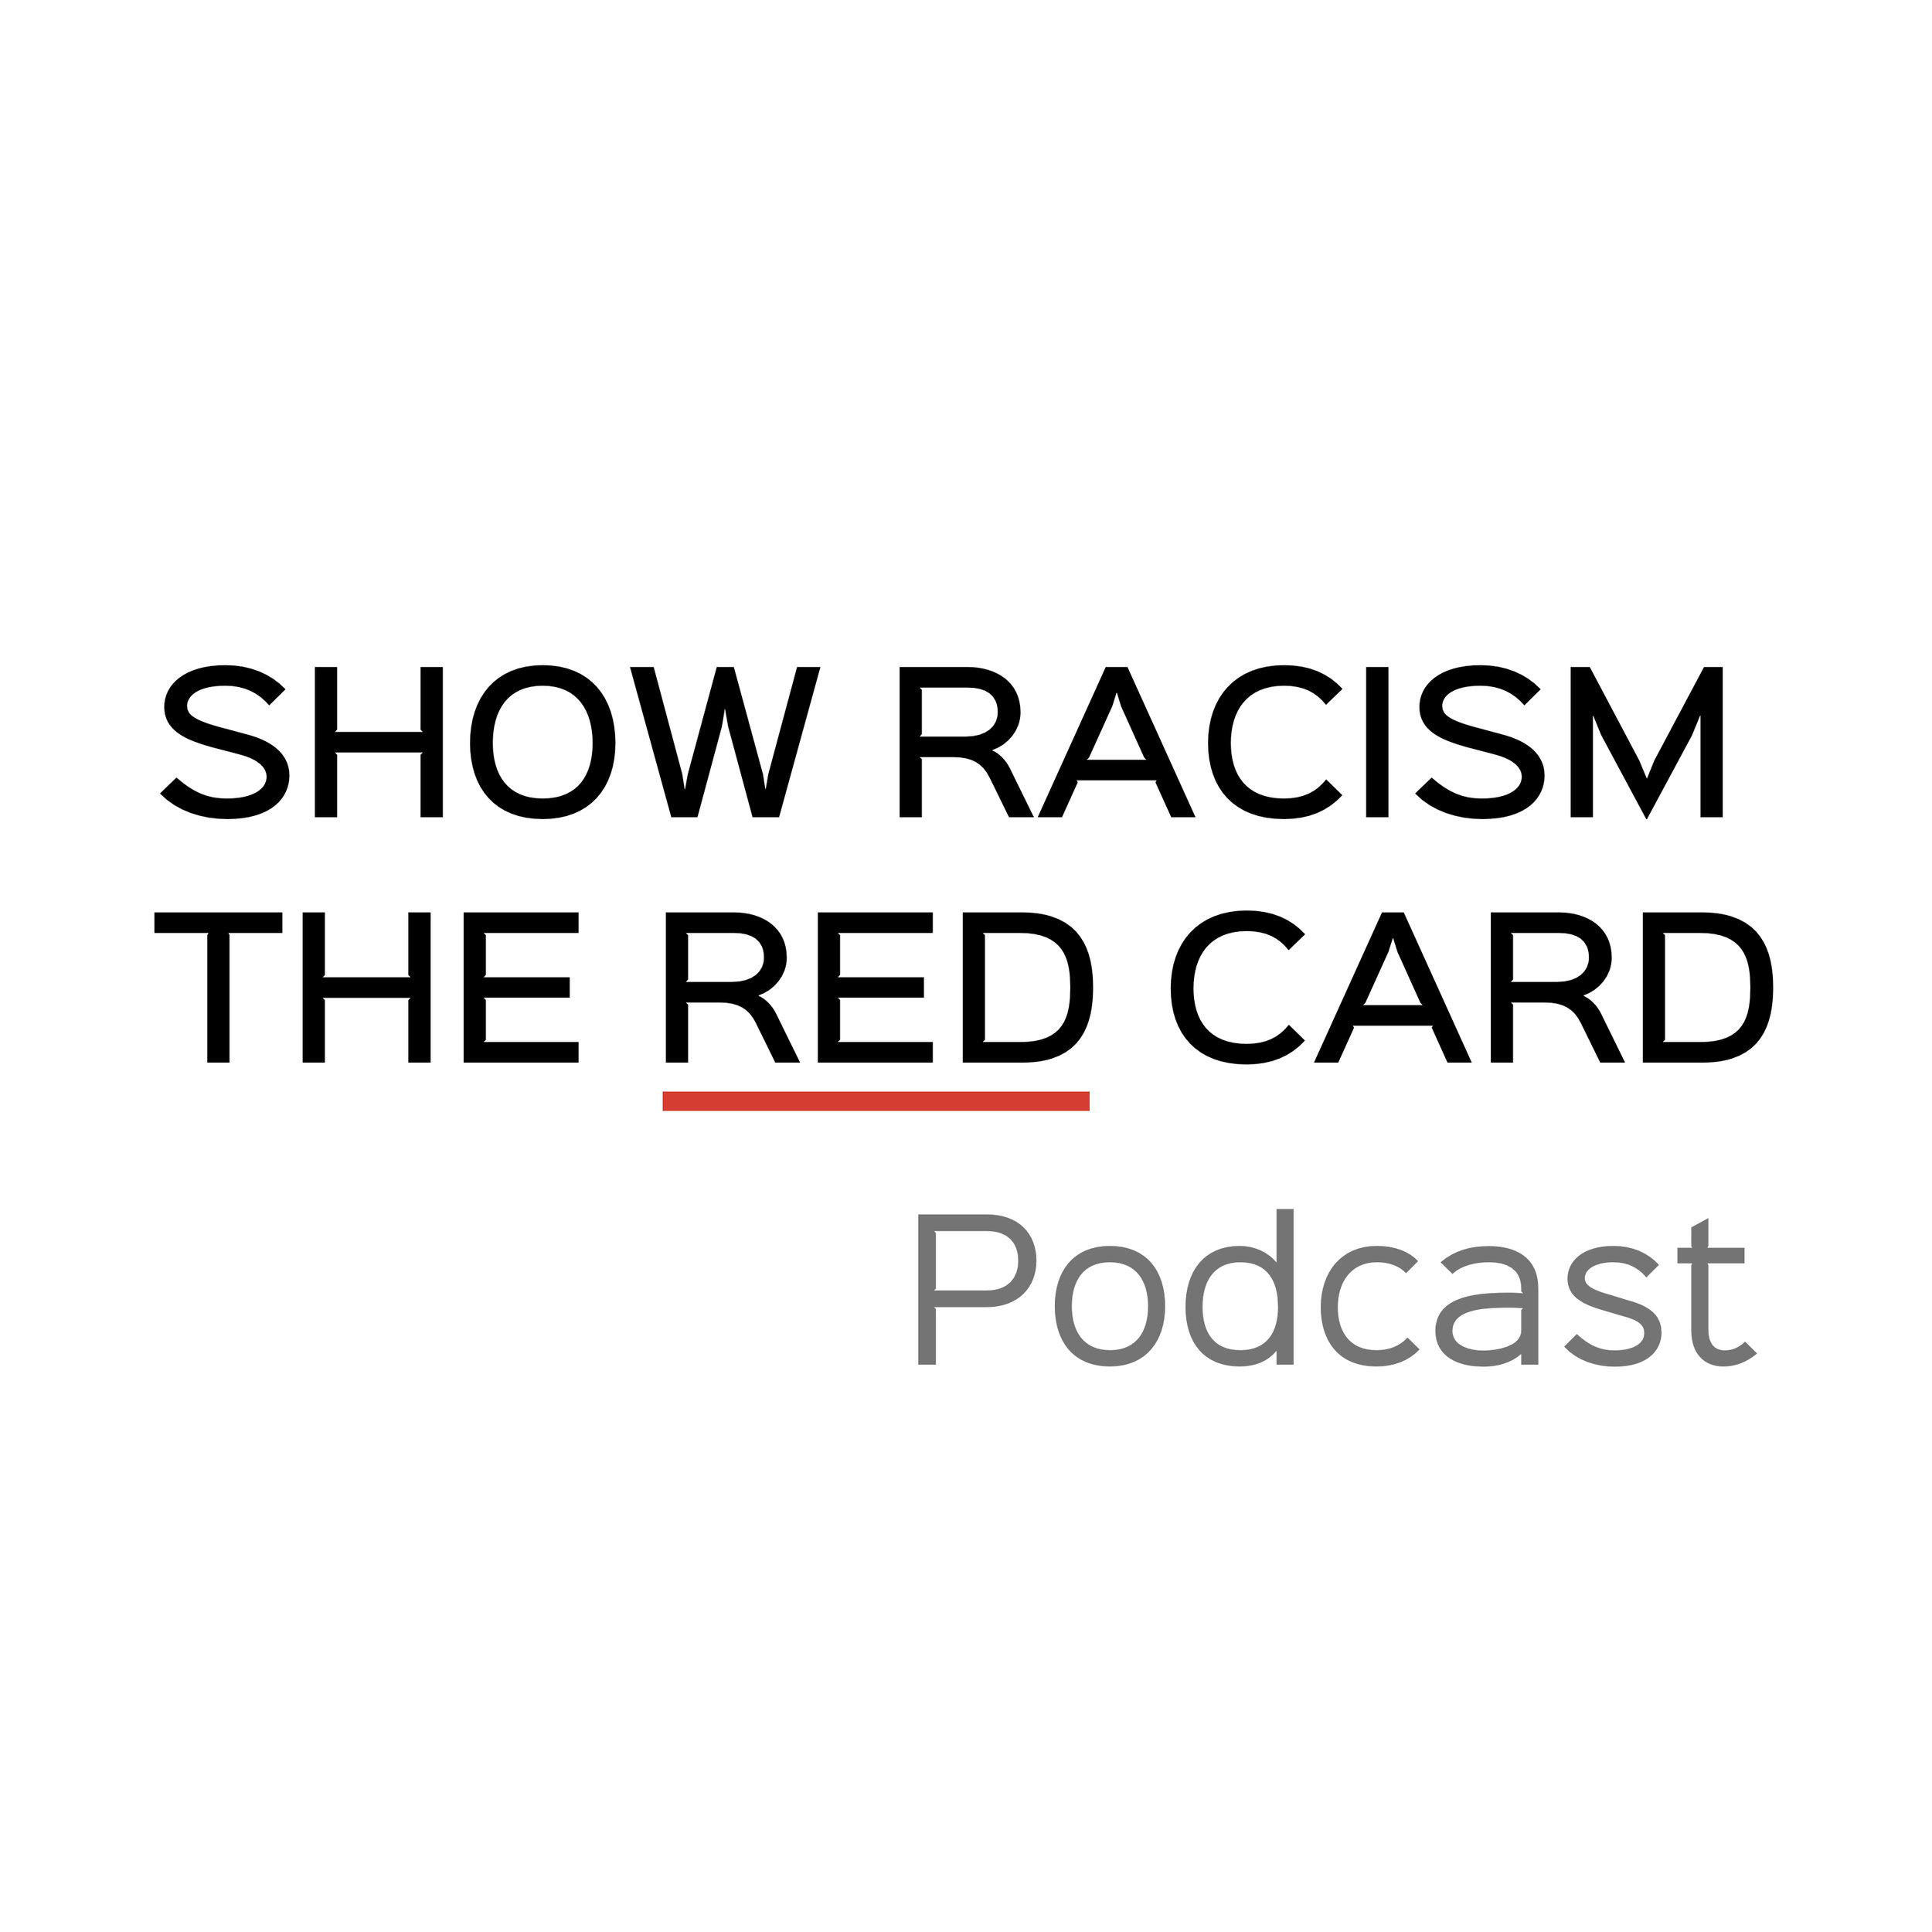 Show Racism the Red Card Podcast Logo 1.jpg